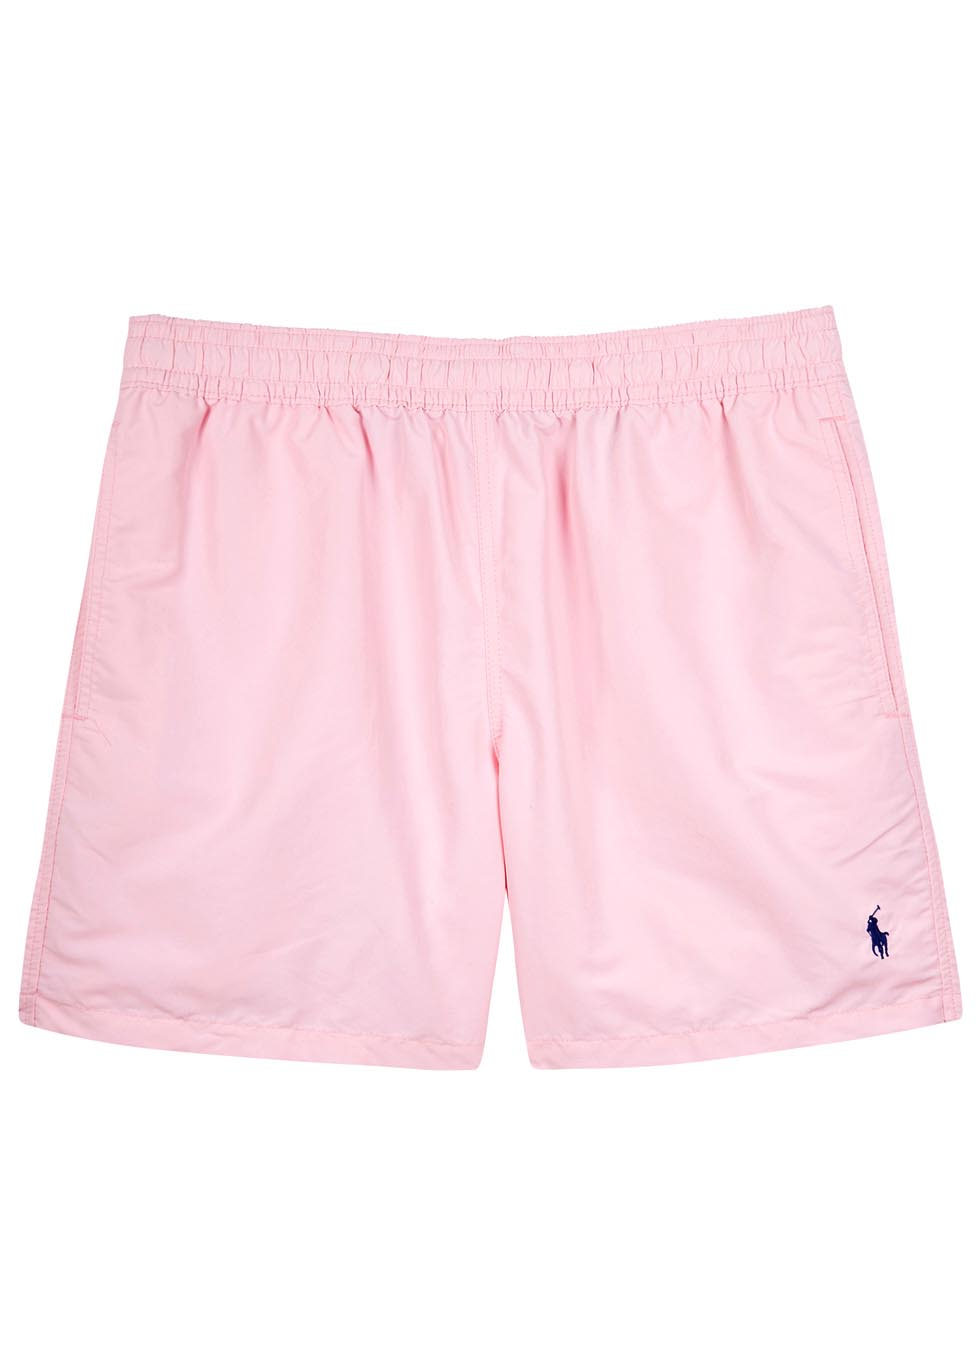 a8a722b0 france pink ralph lauren swim shorts 3eadf 15252